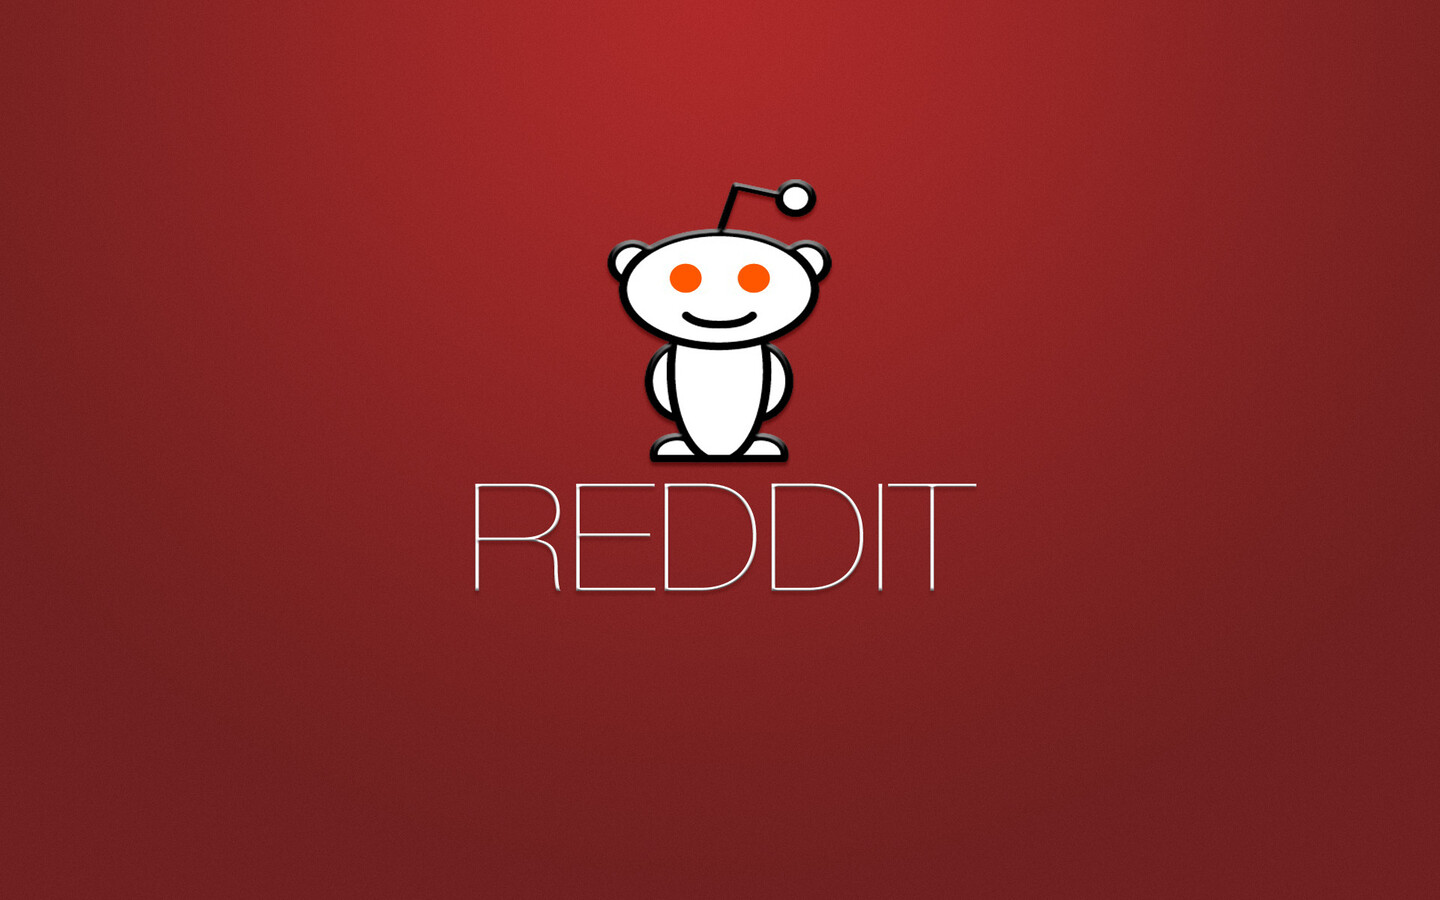 1440x900 Reddit Logo 1440x900 Resolution Hd 4k Wallpapers